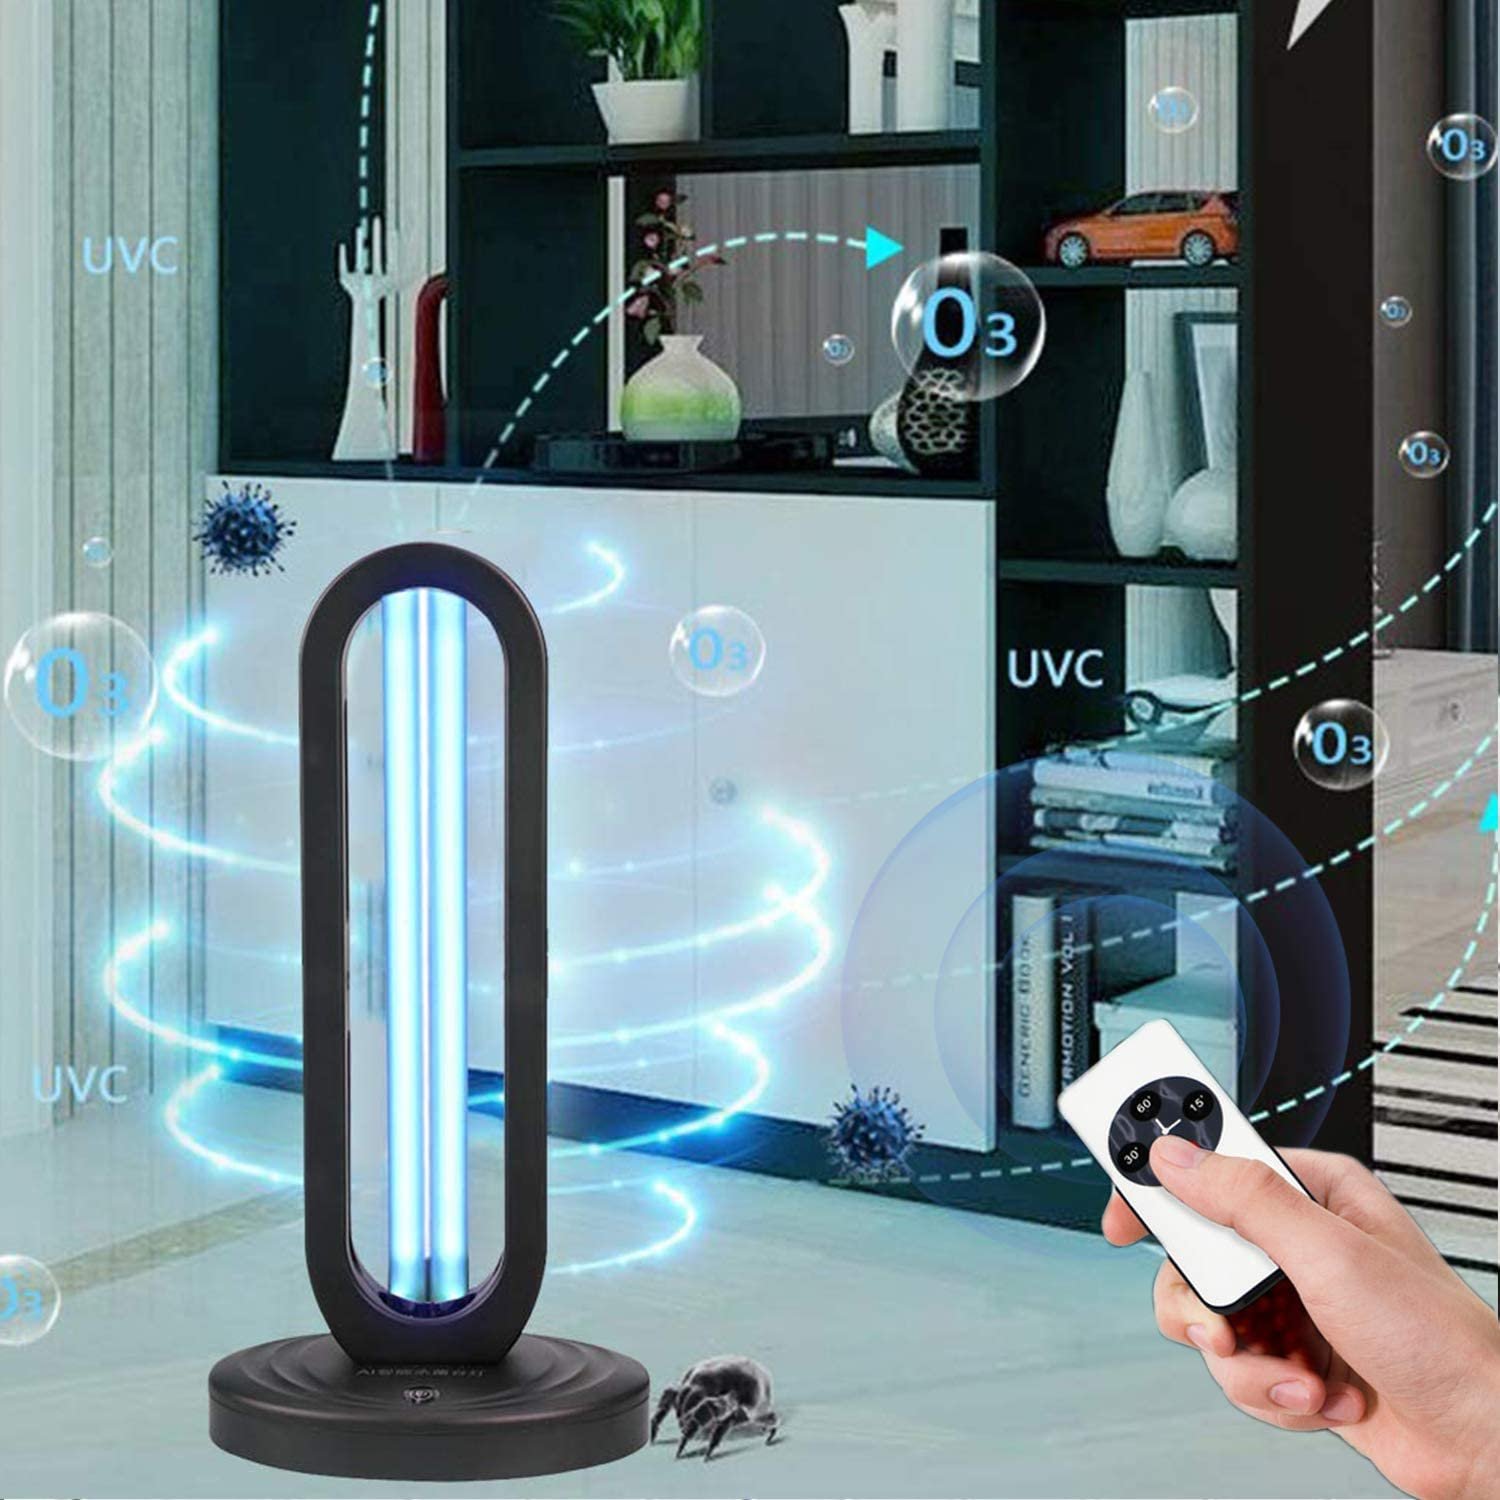 Room UVC Cleaner for Home Wireless Remote Control | Office Hotel UV Germicidal Lamp 38W Disinfection Lamp with Ozone Sterilization School UV Light Sanitizer /& Ultraviolet Sterilizer Lamp